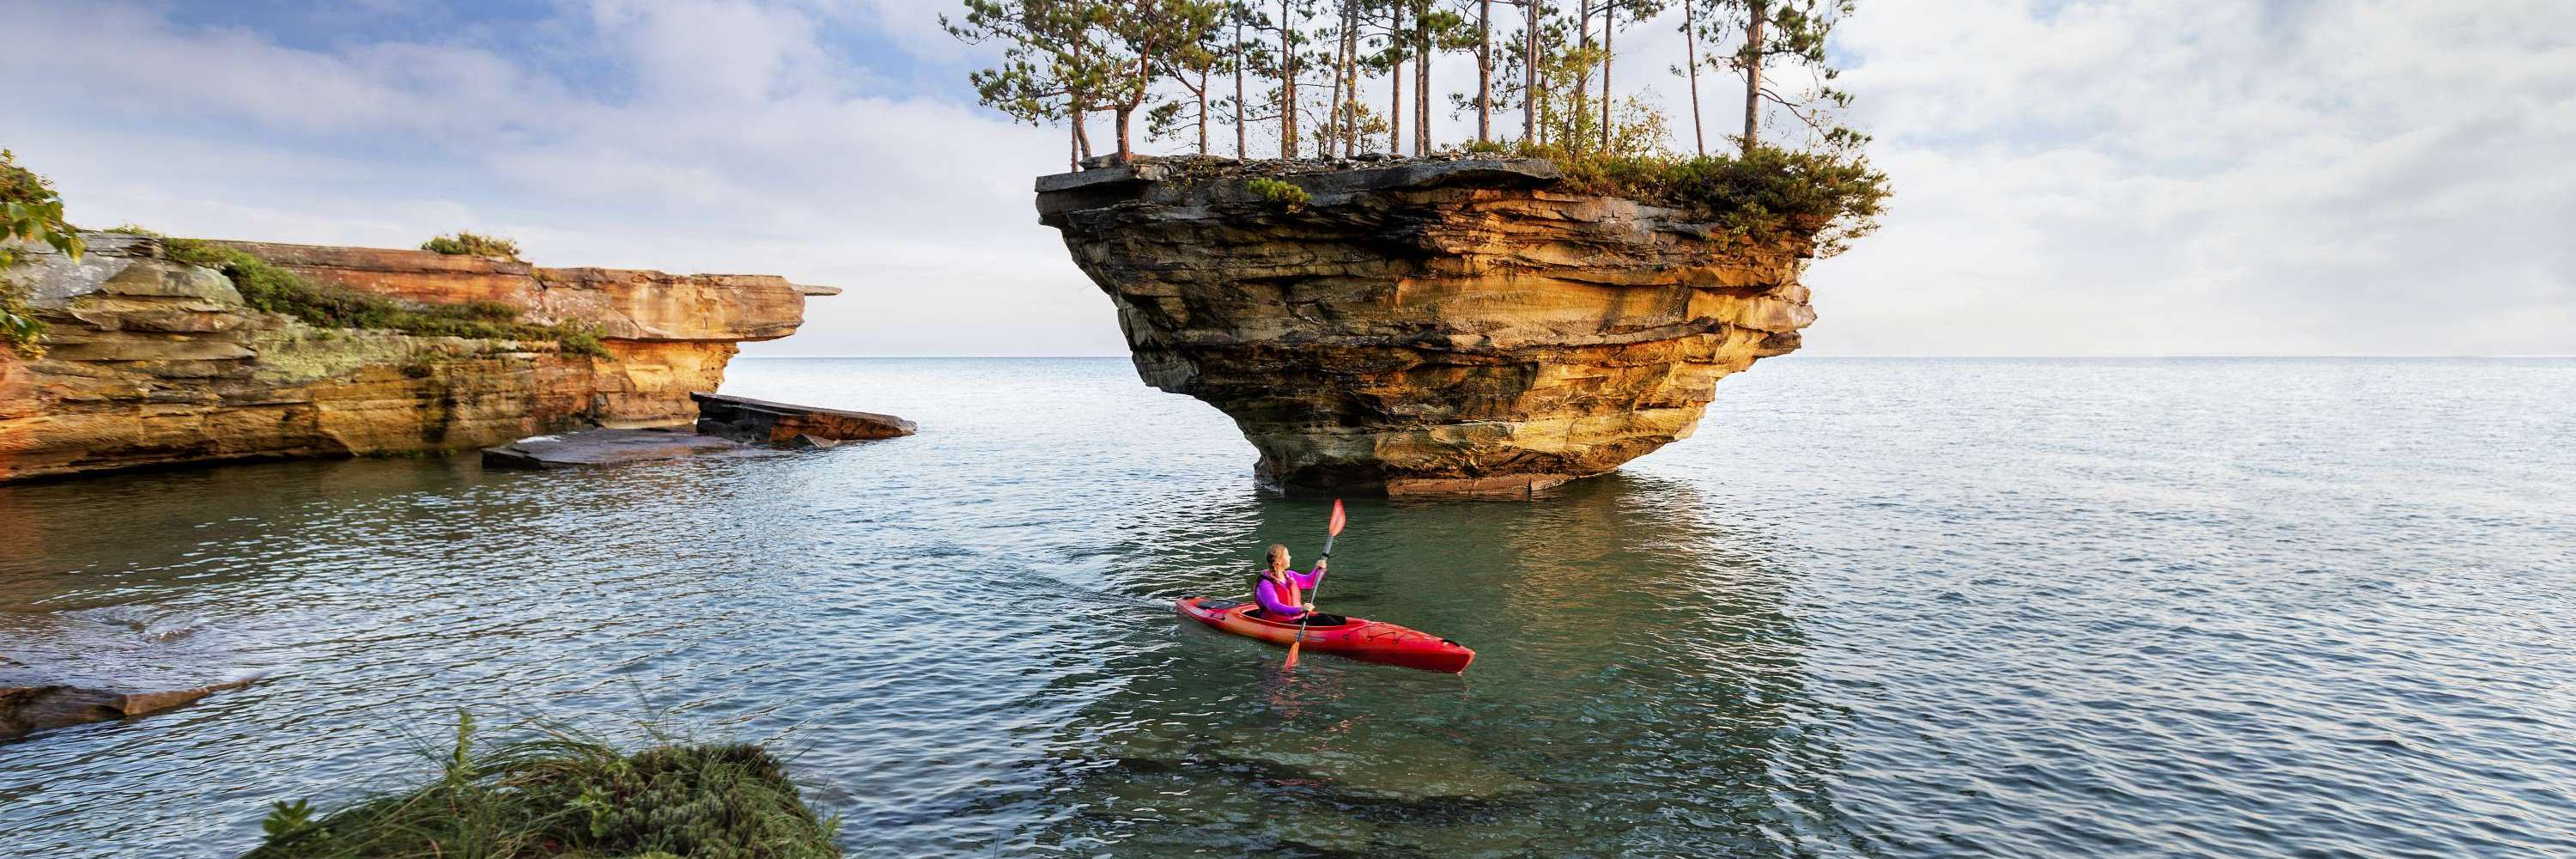 Kayaker at Turnip Rock